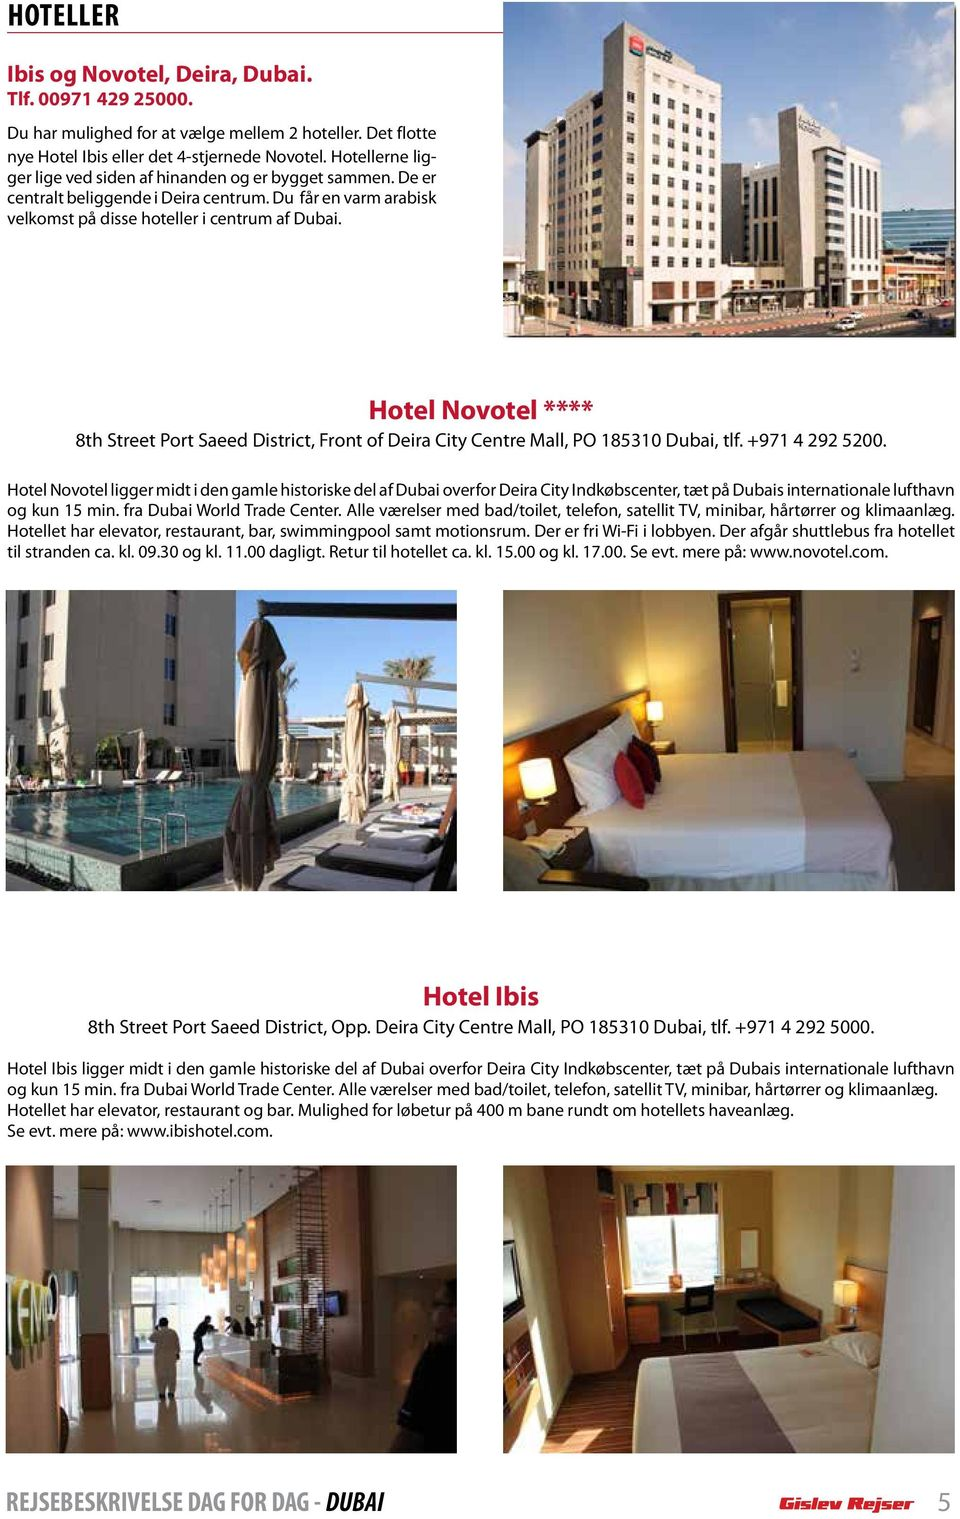 Hotel Novotel **** 8th Street Port Saeed District, Front of Deira City Centre Mall, PO 185310 Dubai, tlf. +971 4 292 5200.